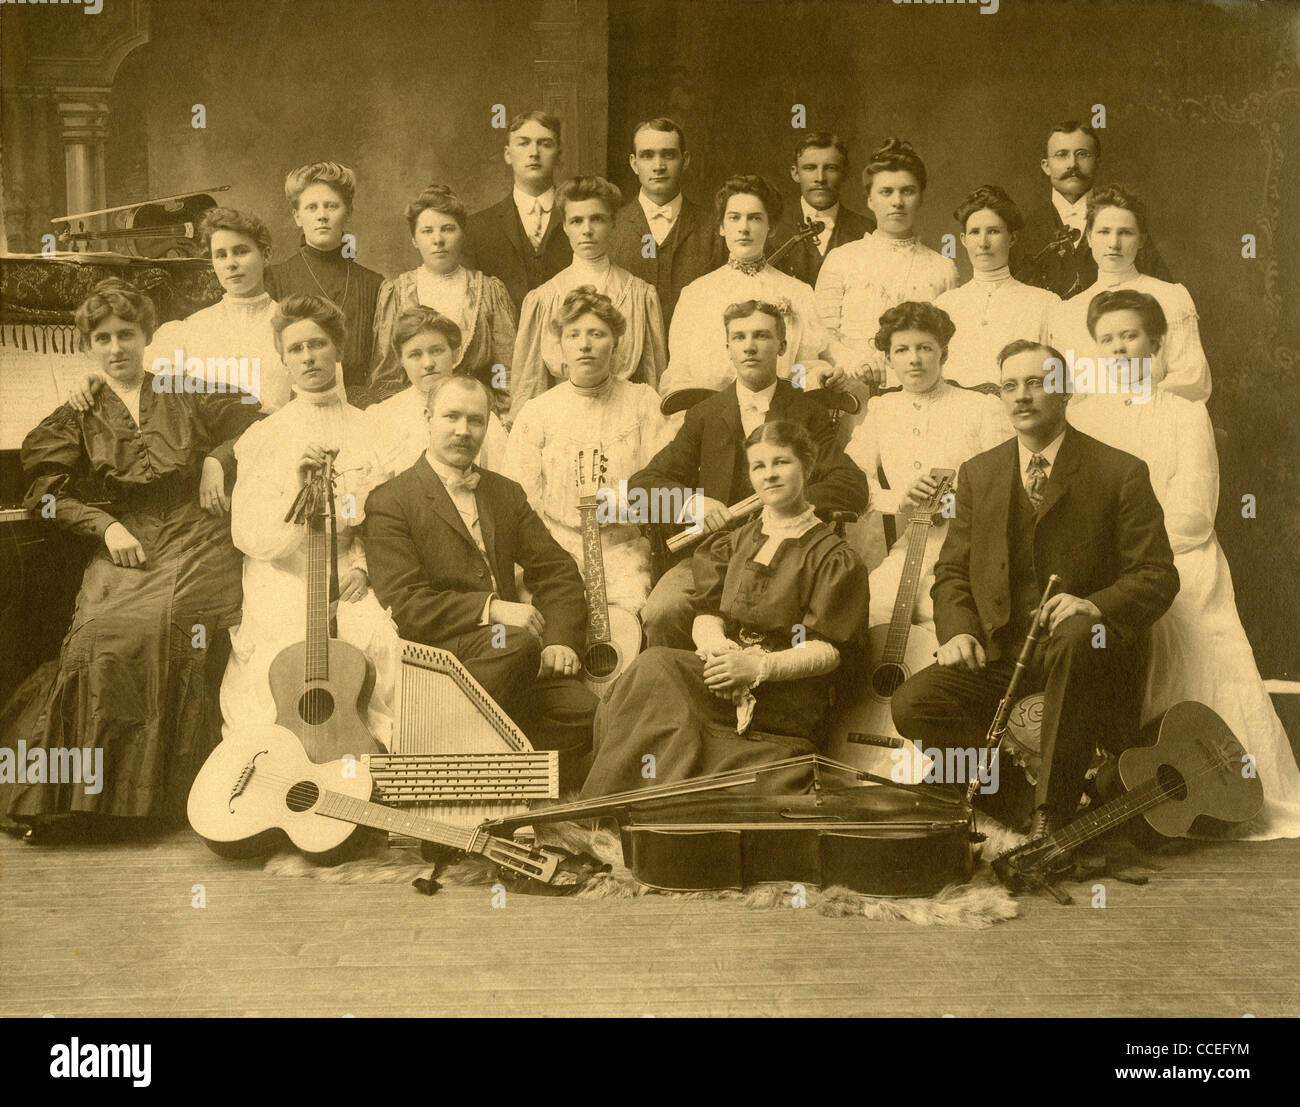 Early 1900s Musicians Stock Photos & Early 1900s Musicians Stock